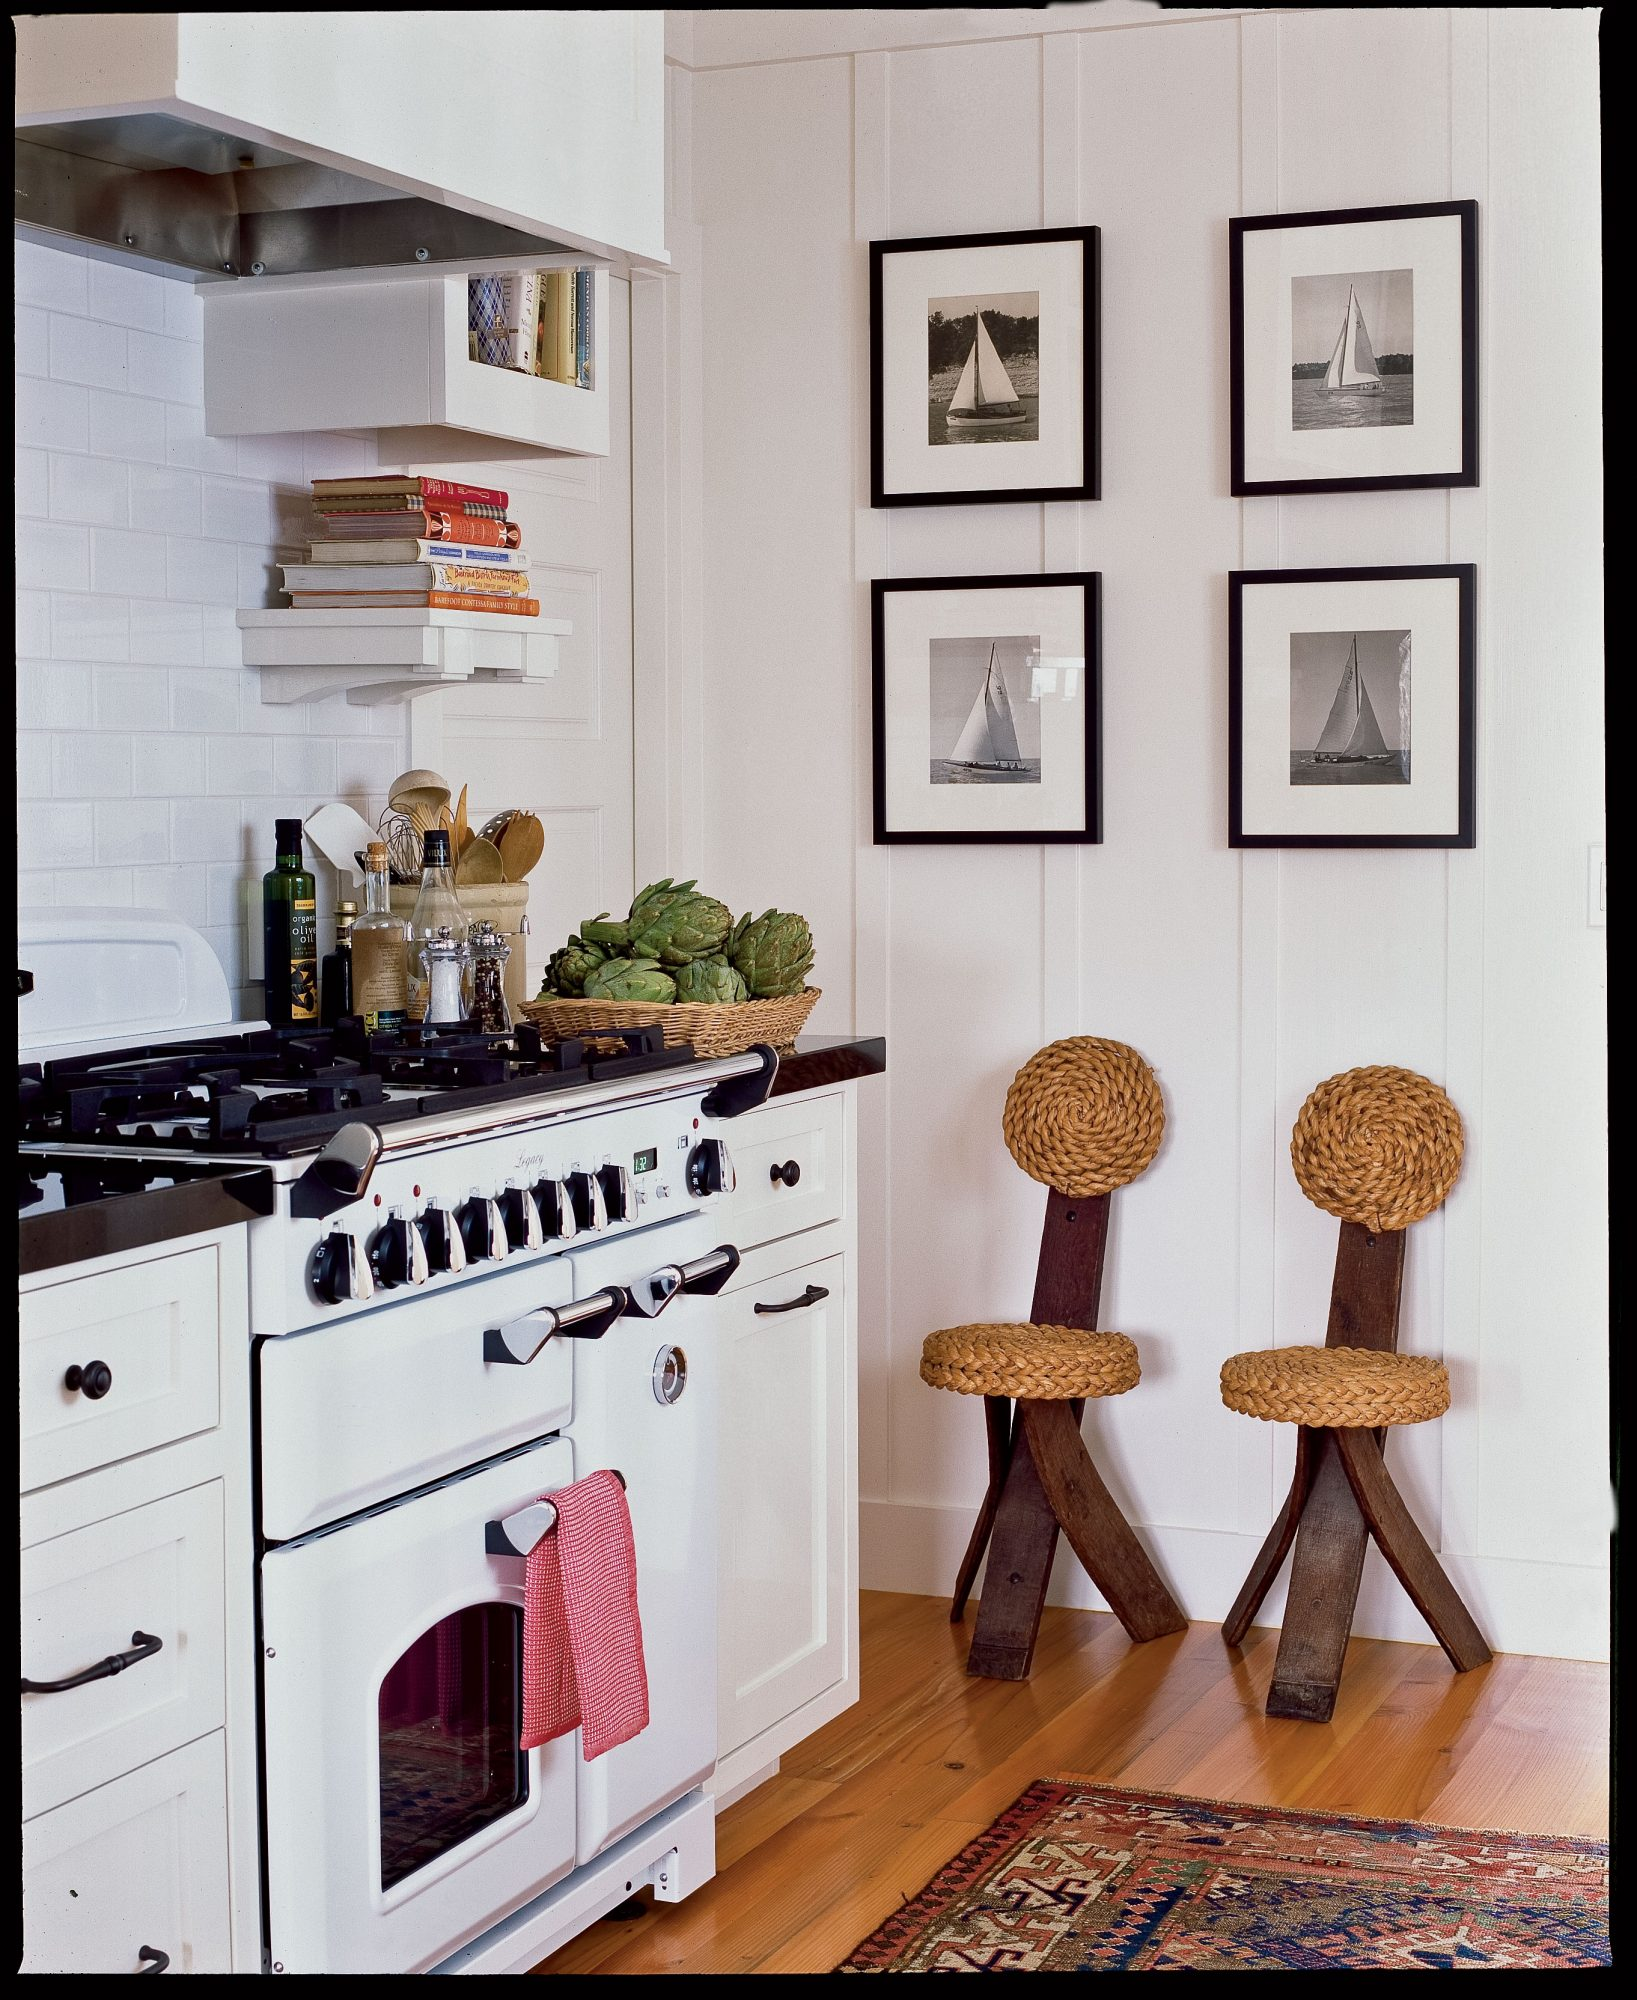 The kitchen's 1950s rope-and-wood chairs and the sailboat prints exude nautical style without being over the top. An Oriental rug covers the vintage Douglas fir floors in rich reds and blues, tying in the kitchen with the rest of the cottage.